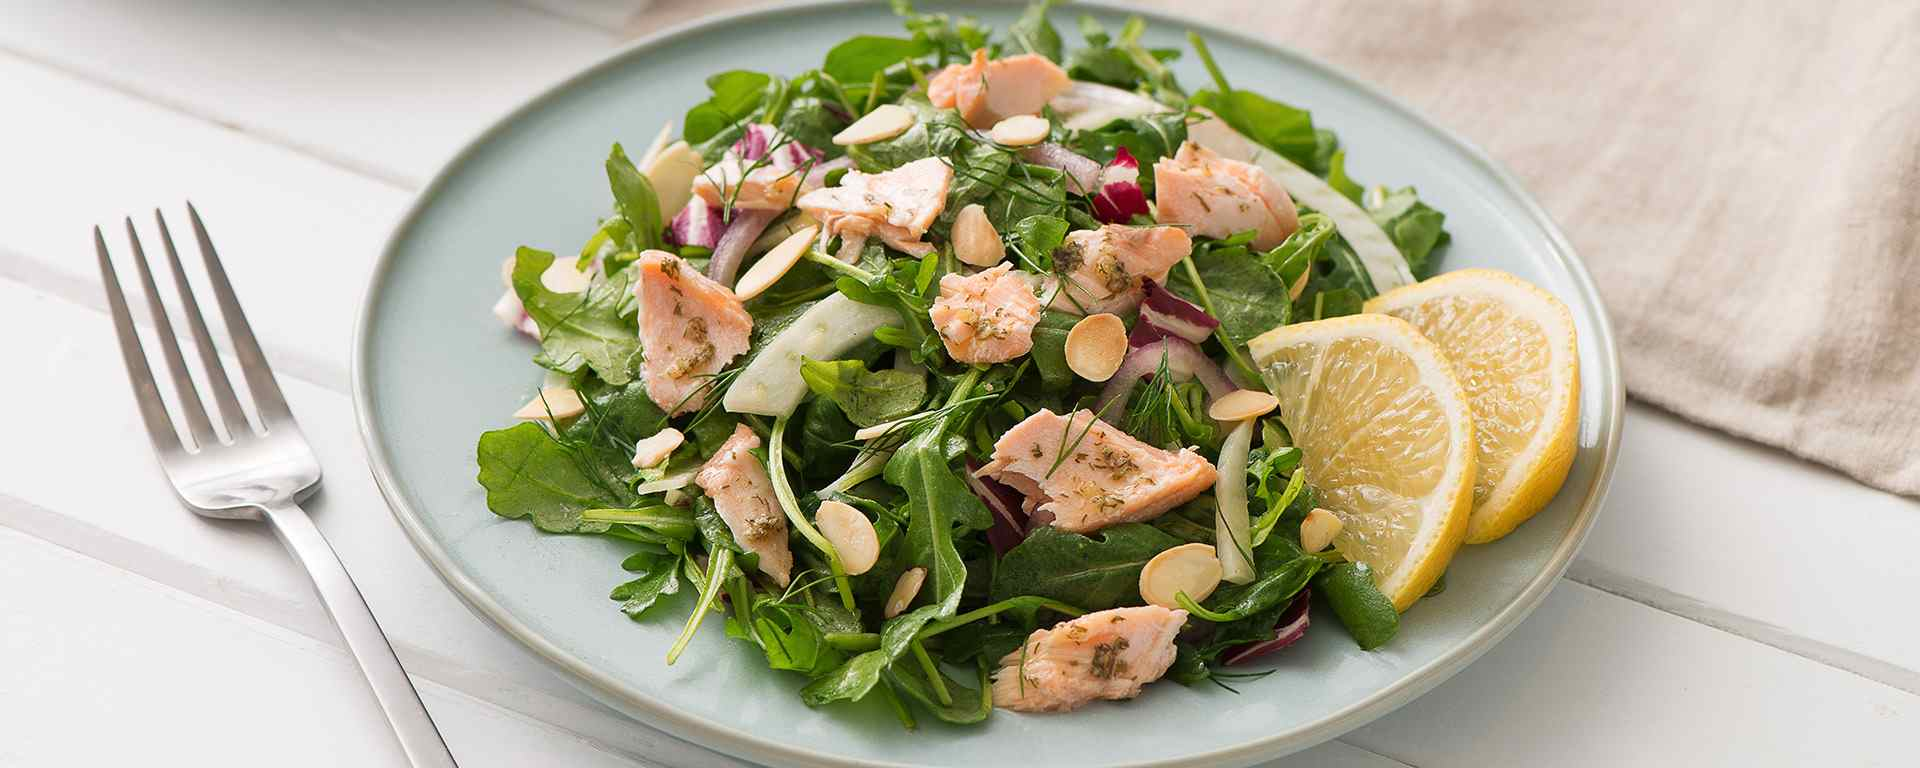 Photo for - Hot Salmon Salad with Lemon Dill and Citrus Vinaigrette